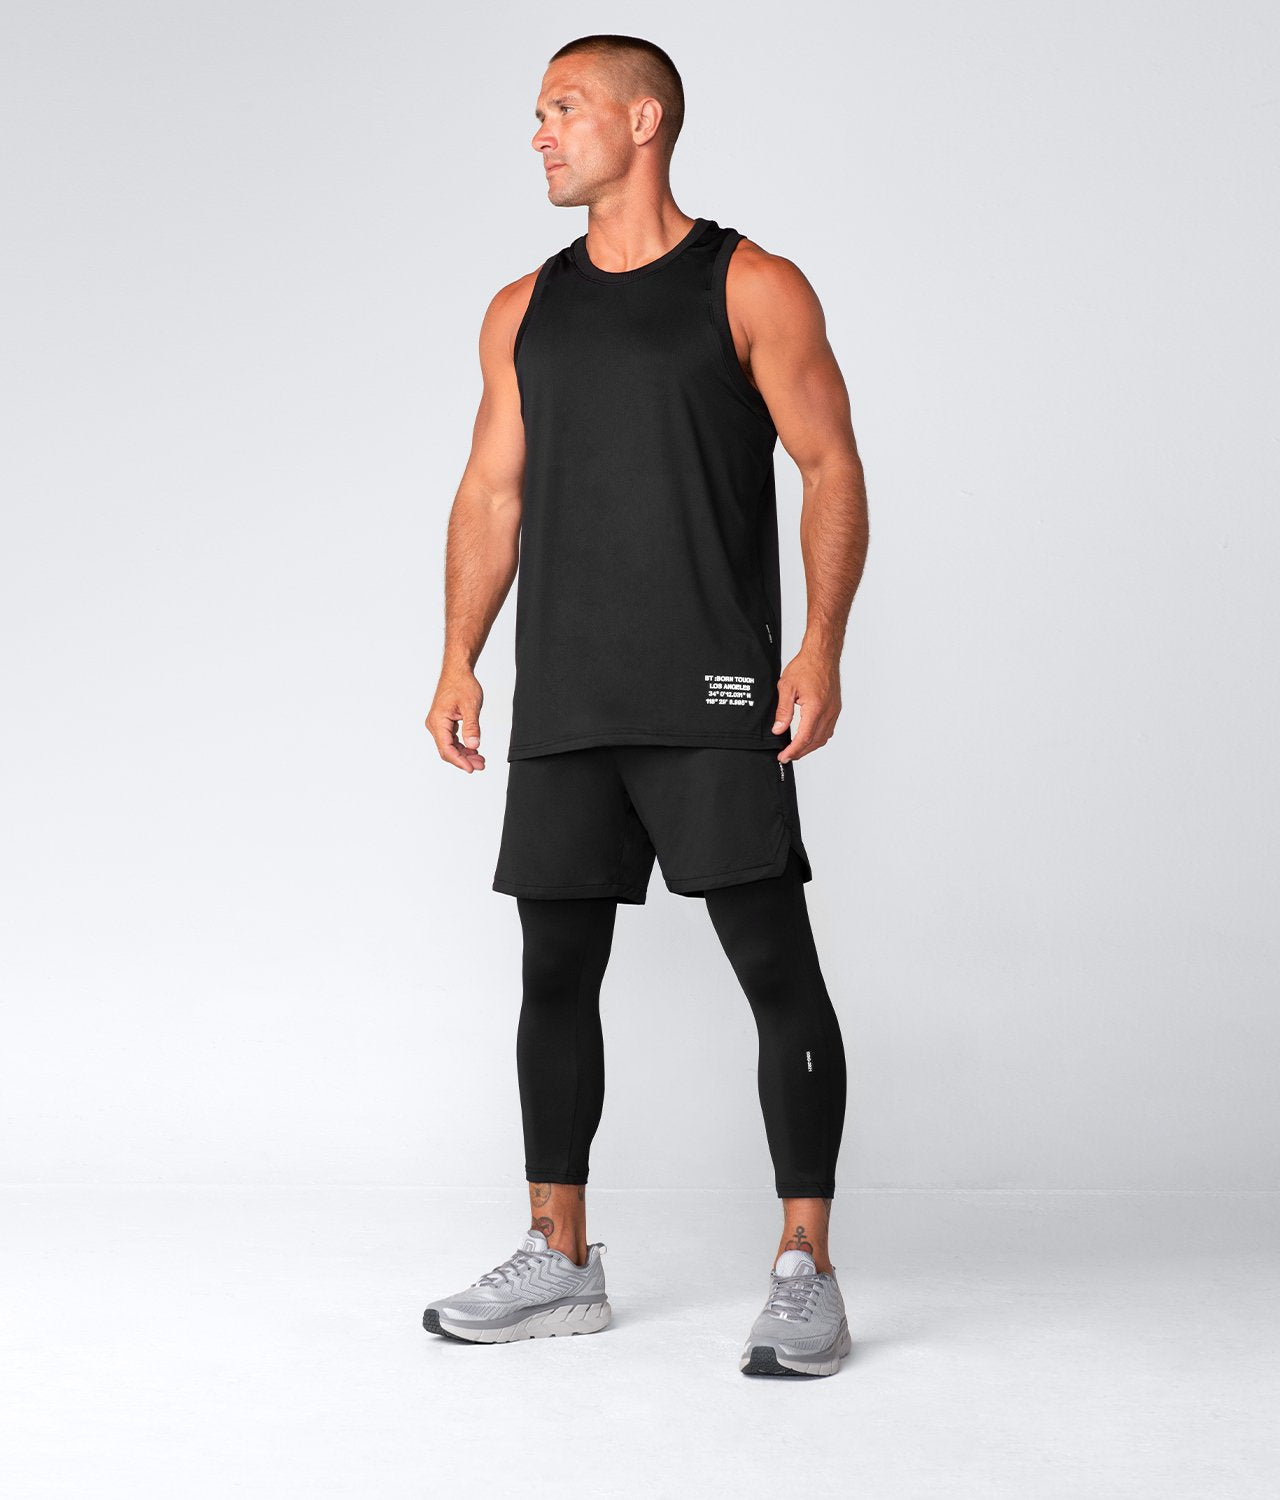 Born Tough United Kingdom Air Pro™ Honeycomb Mesh Black Fitted Tank Gym Workout Tank Top for Men